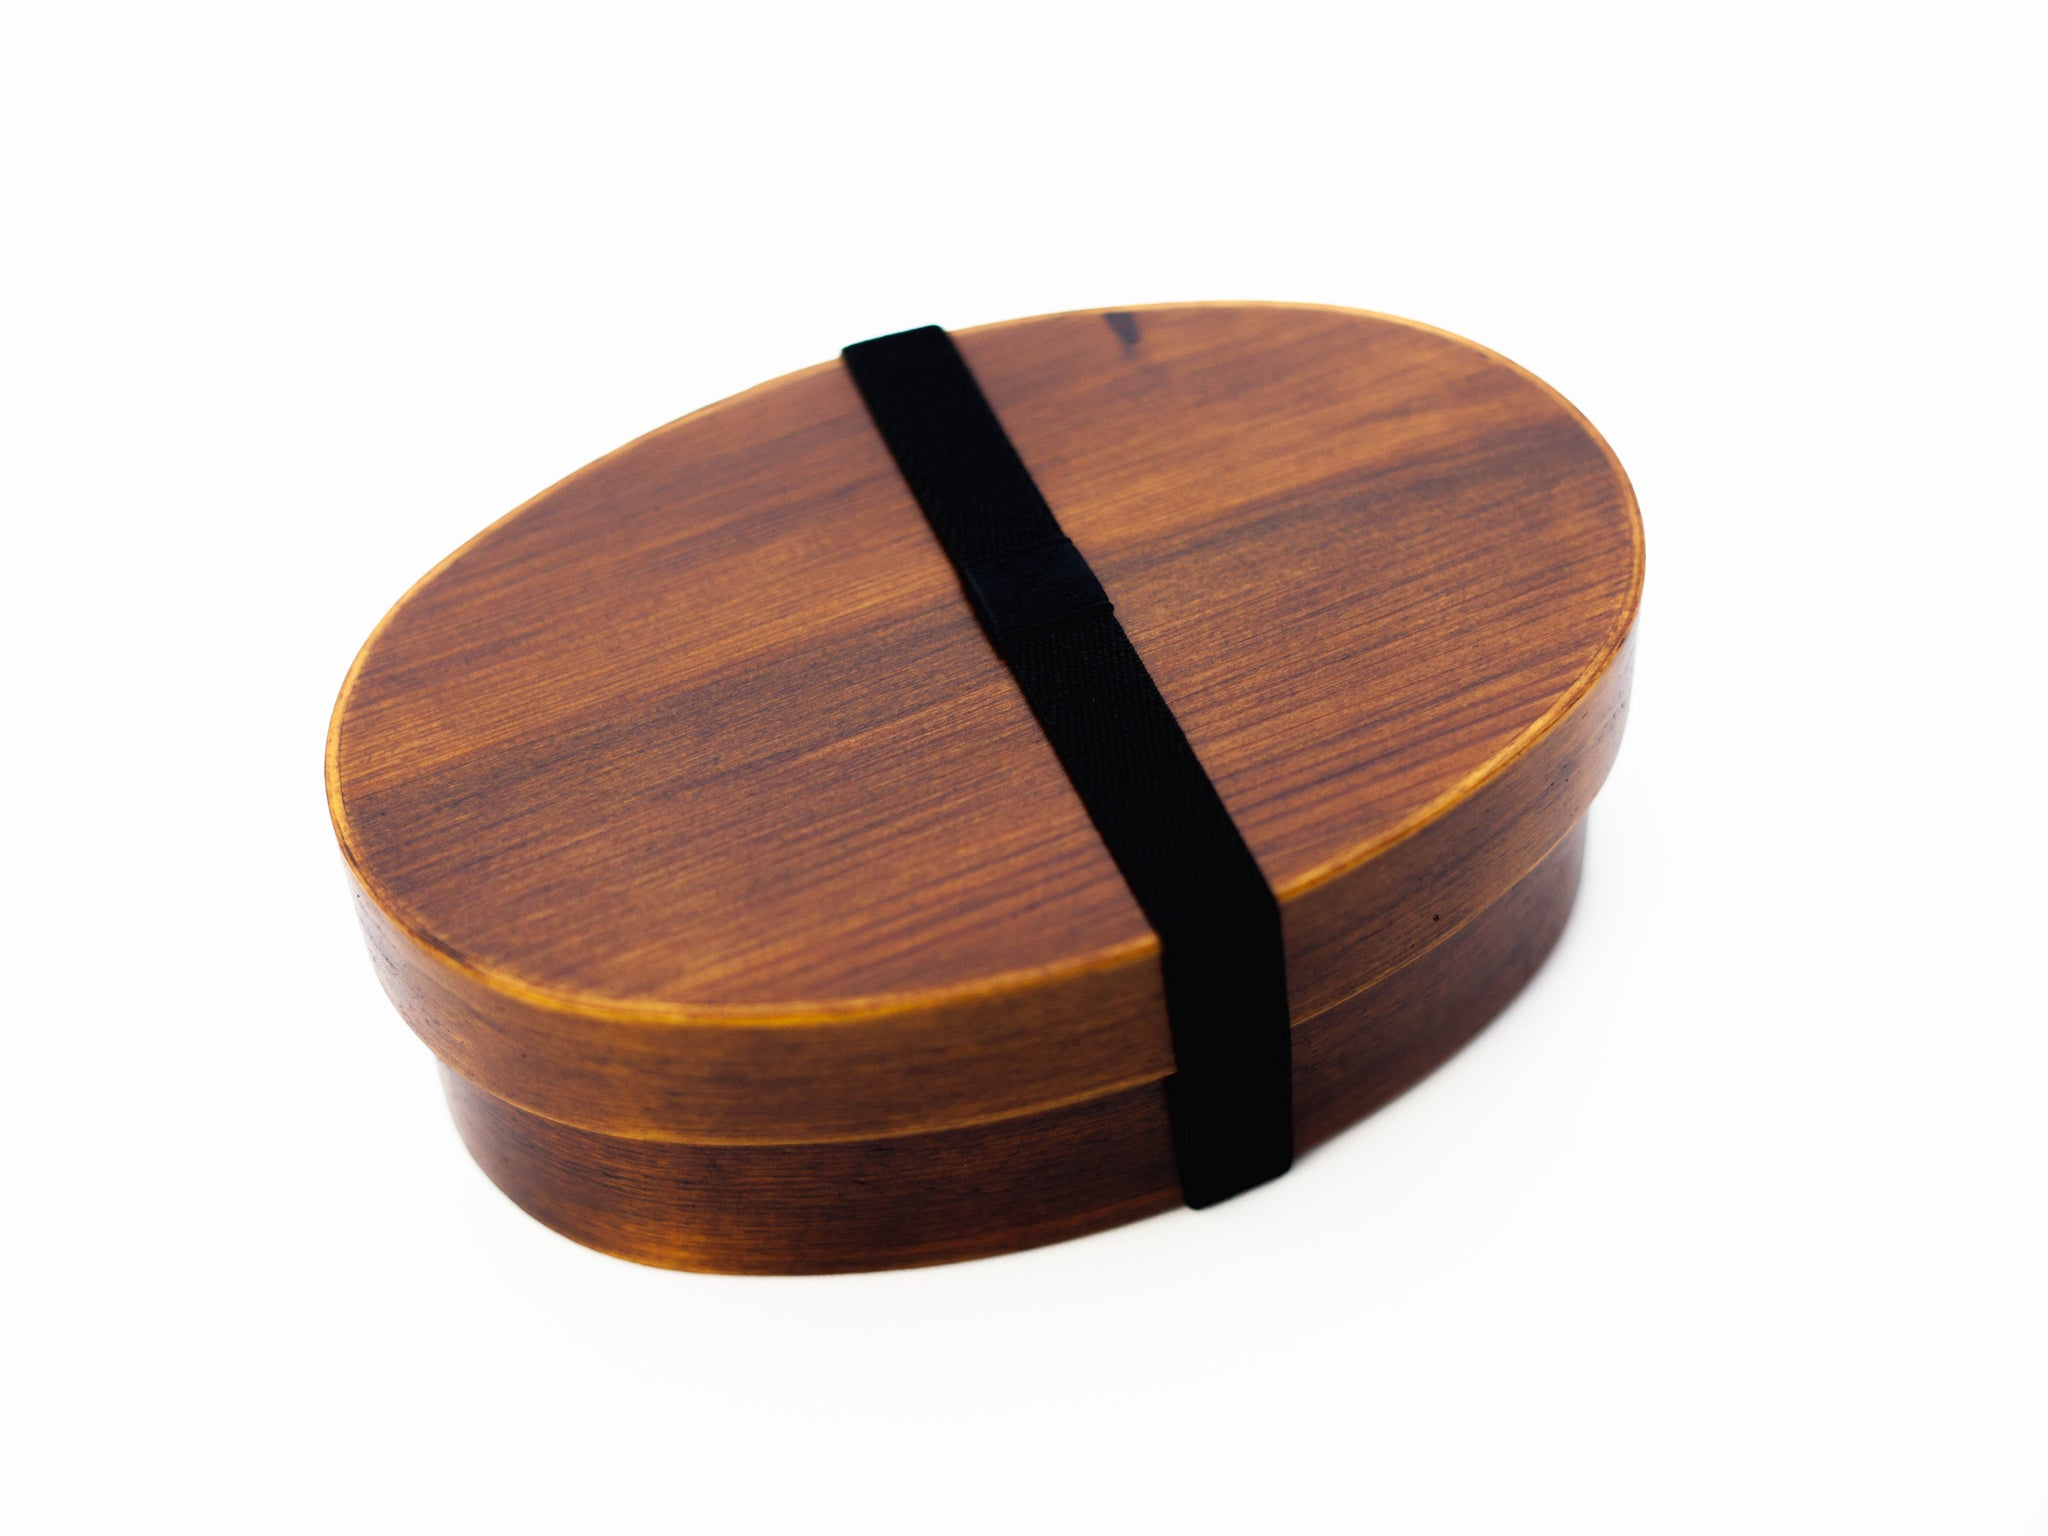 Suri Urushi One Tier Magewappa | Small by Hakoya - Bento&co Japanese Bento Lunch Boxes and Kitchenware Specialists